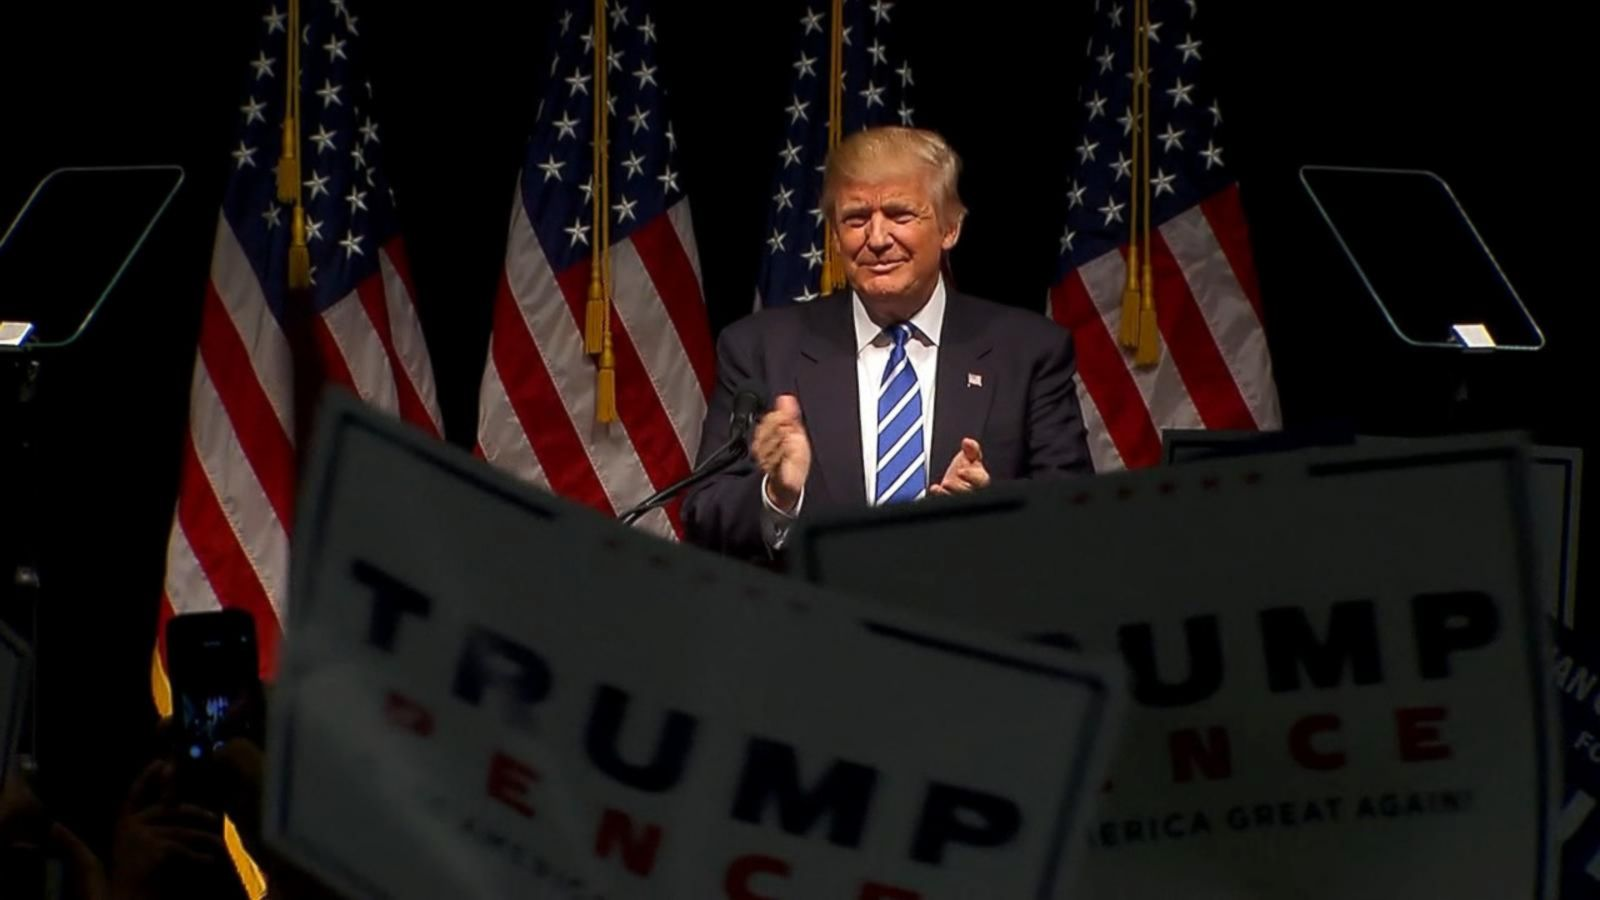 VIDEO: Donald Trump's Campaign Admits Debate Failures